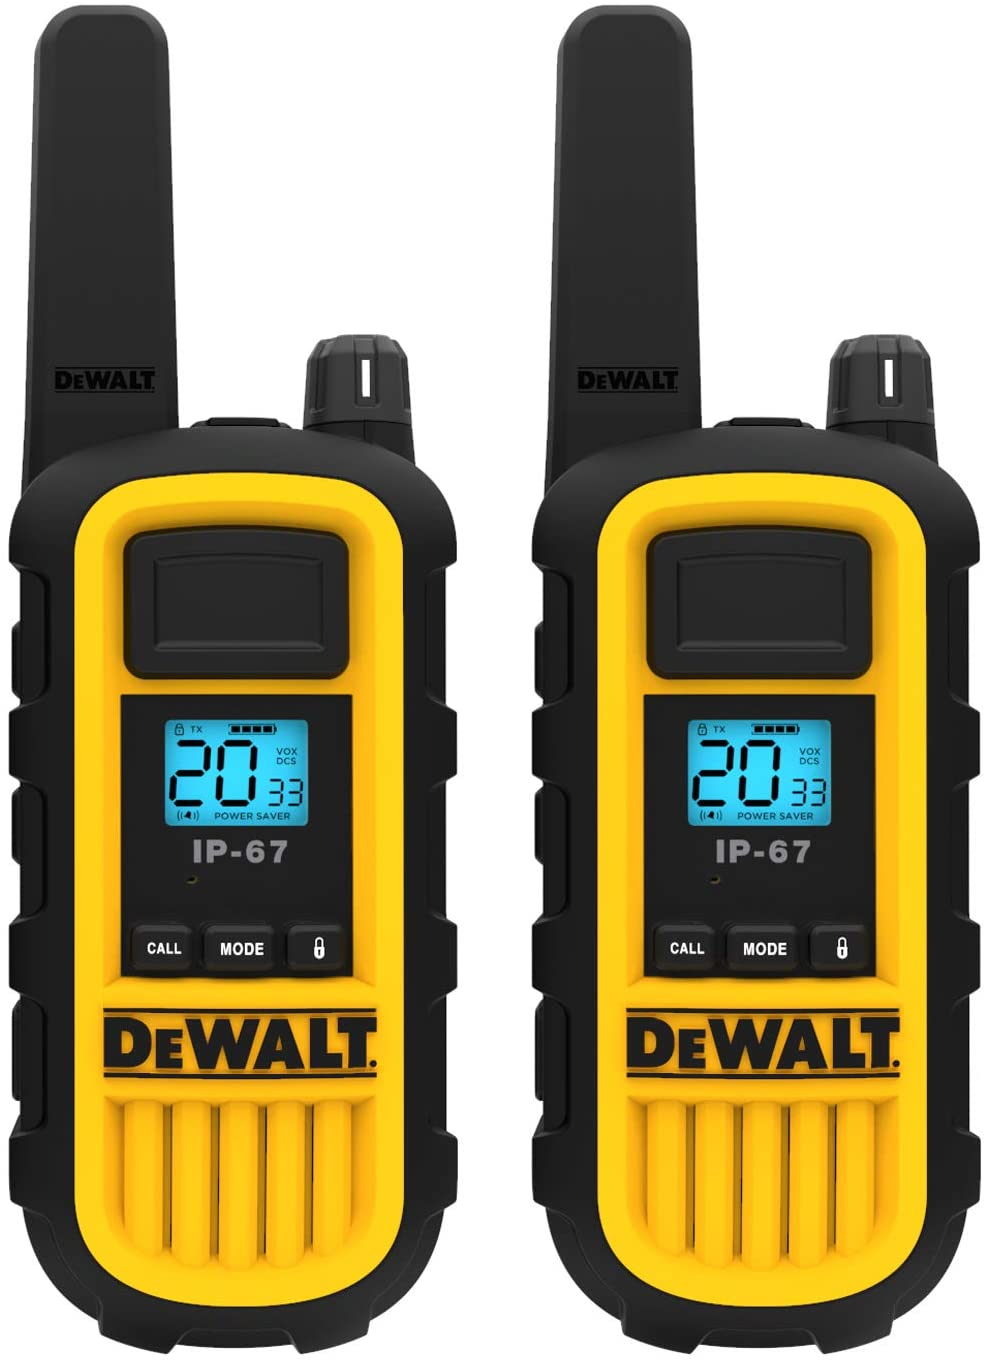 DEWALT DXFRS800 2 Watt Heavy Duty Walkie Talkies